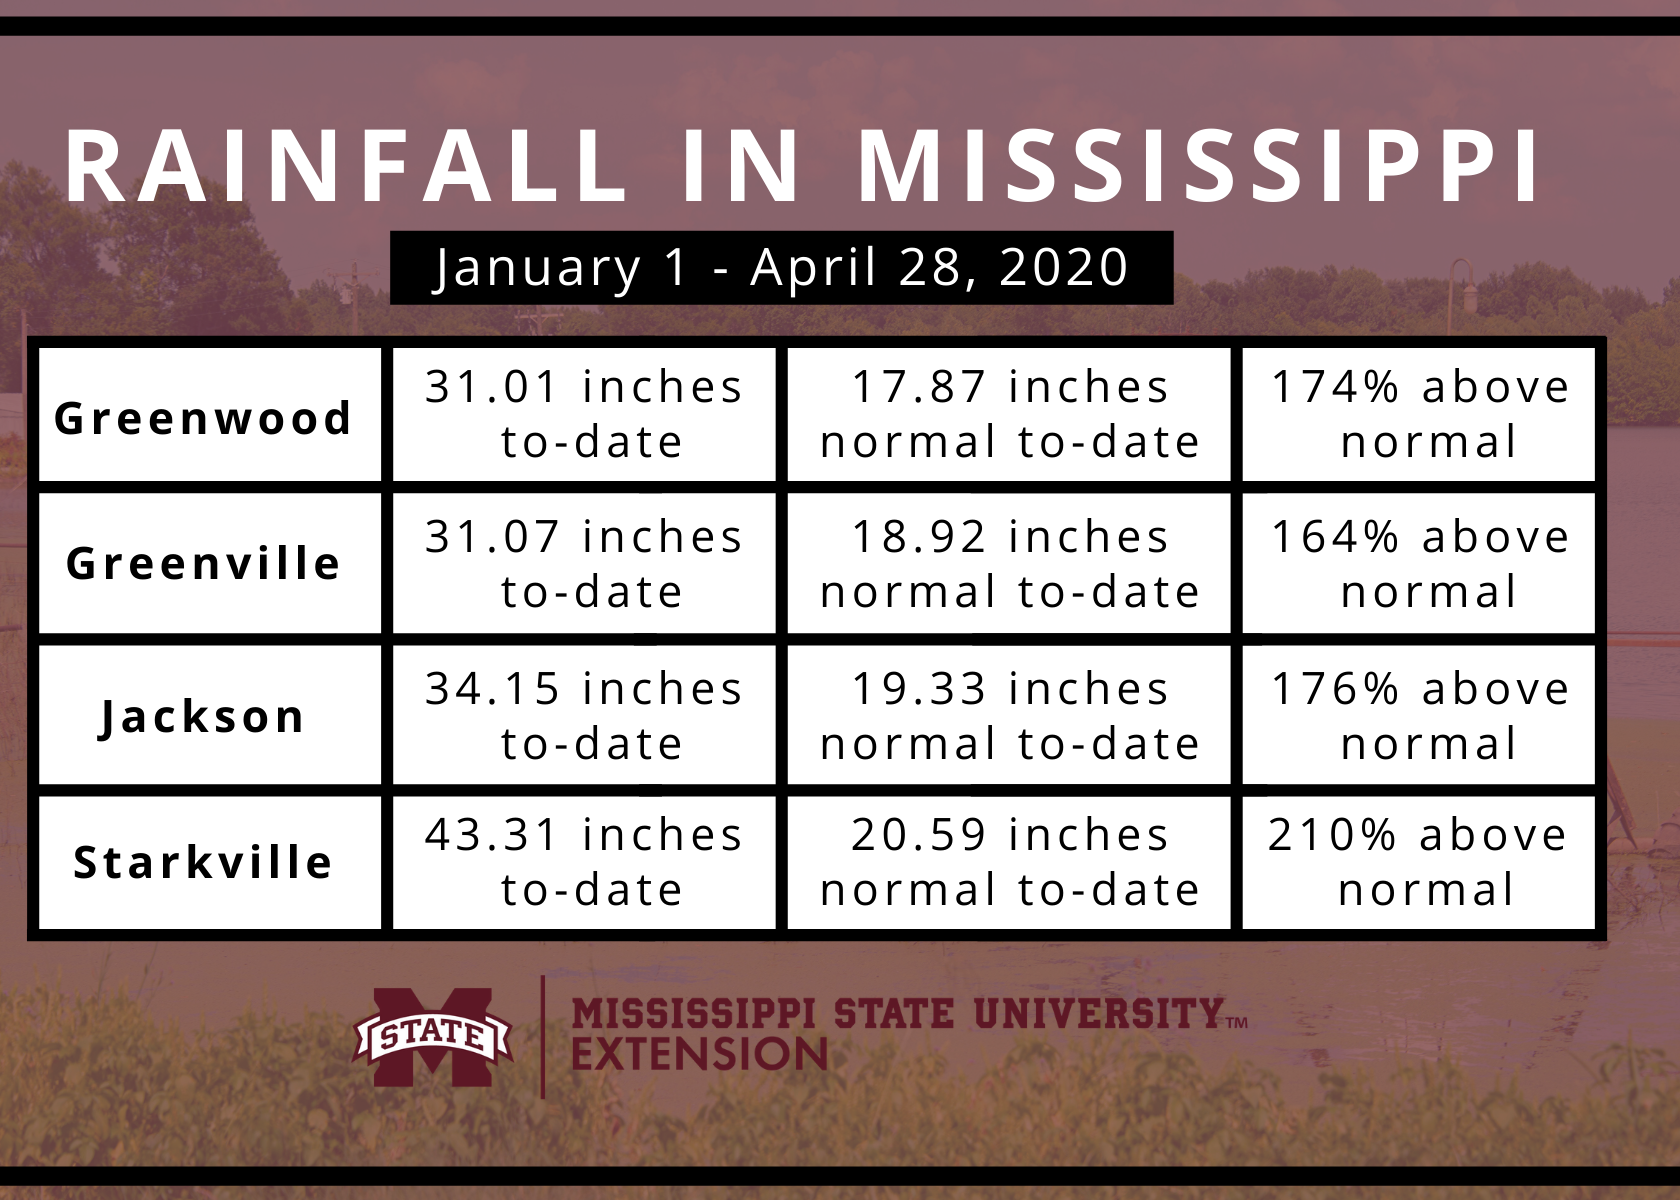 Graphic showing Mississippi rainfall totals in 2020.